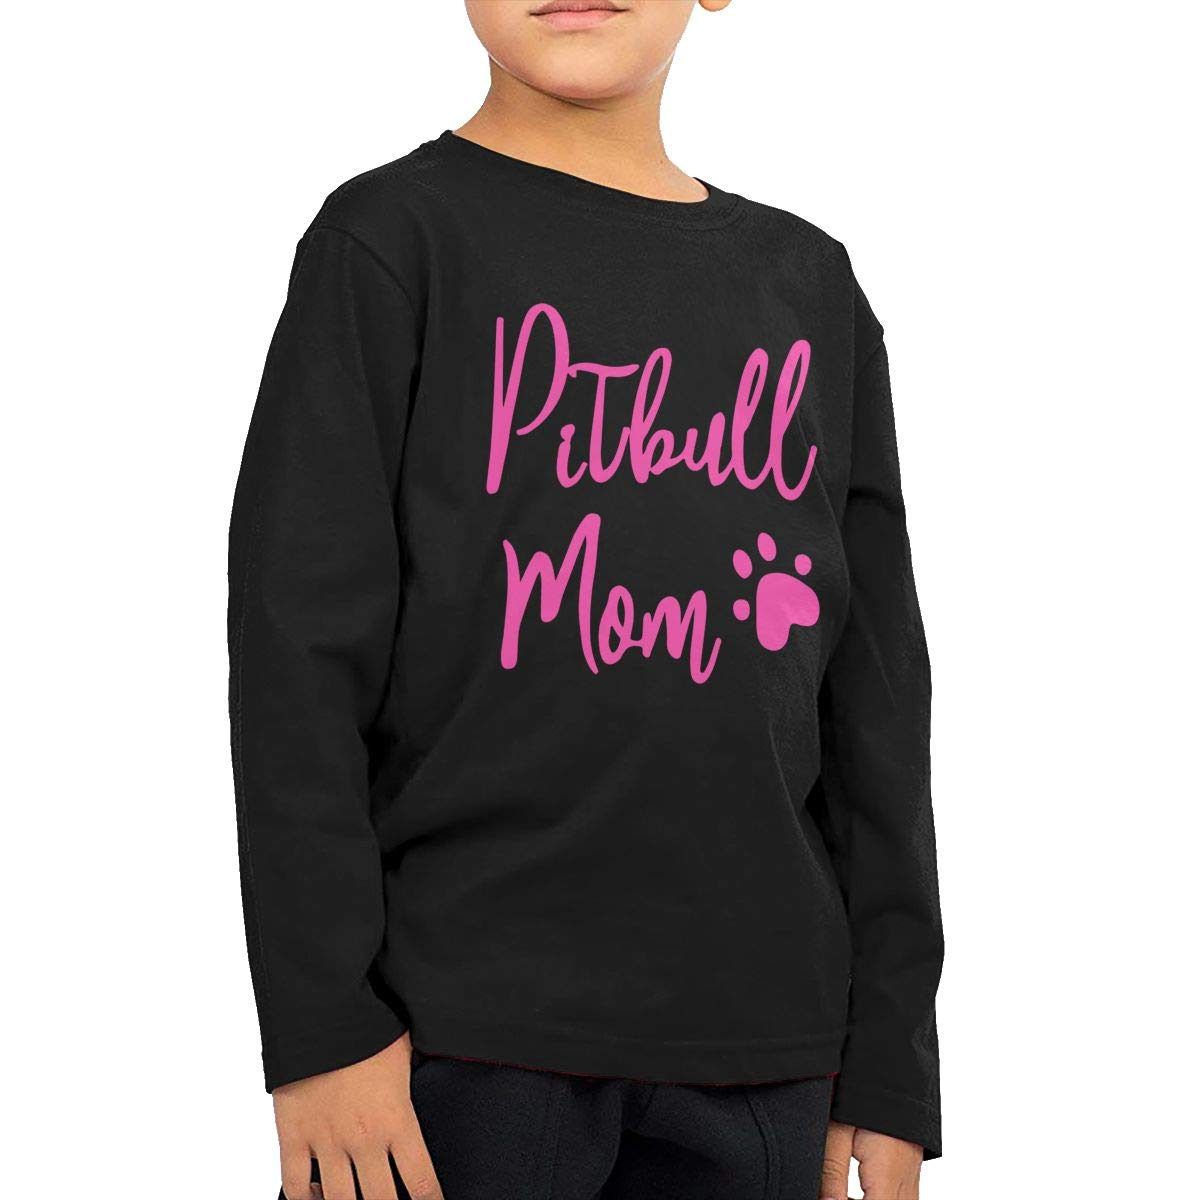 CERTONGCXTS Little Boys Pitbull Mom Dog ComfortSoft Long Sleeve Shirt